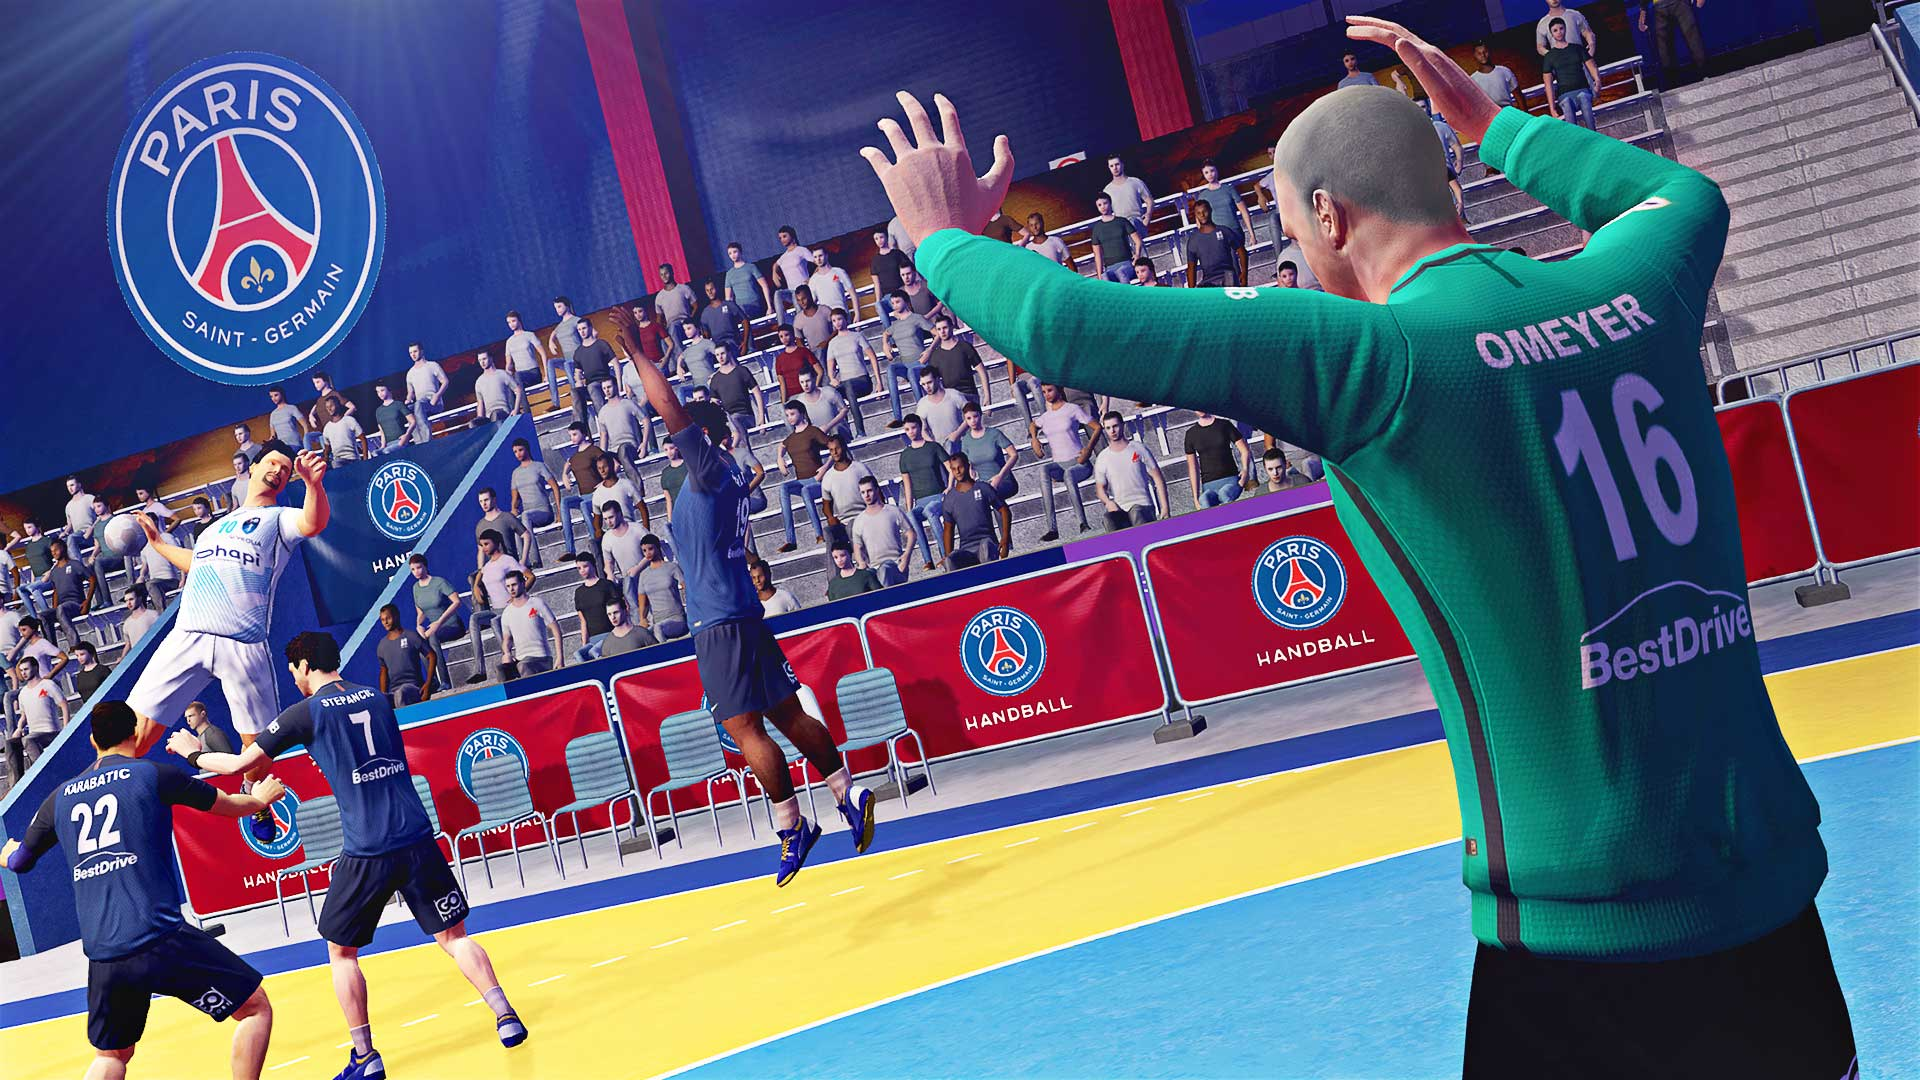 Handball 17 on Steam